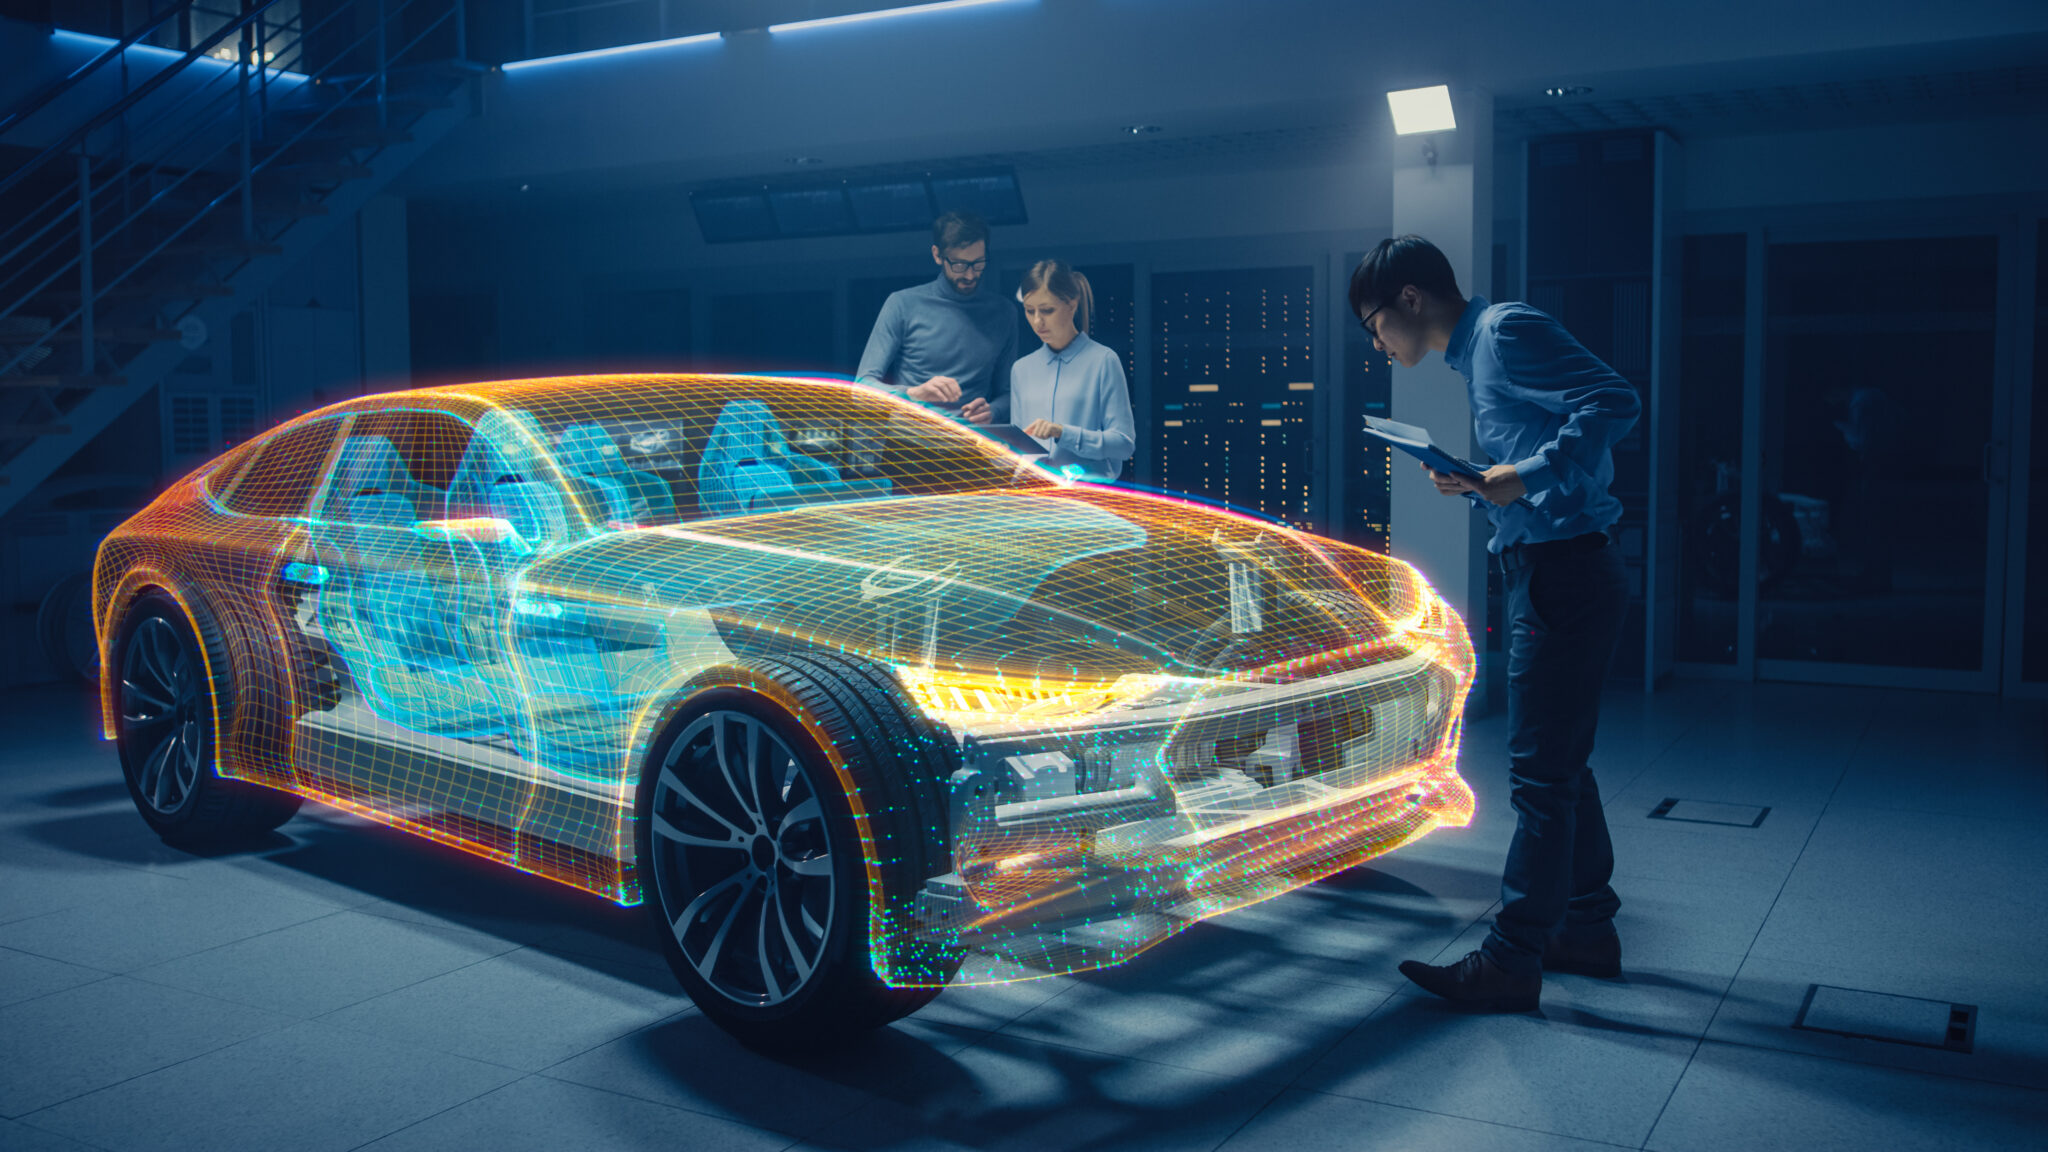 Group,Of,Automobile,Design,Engineers,Working,In,Virtual,Reality,3d